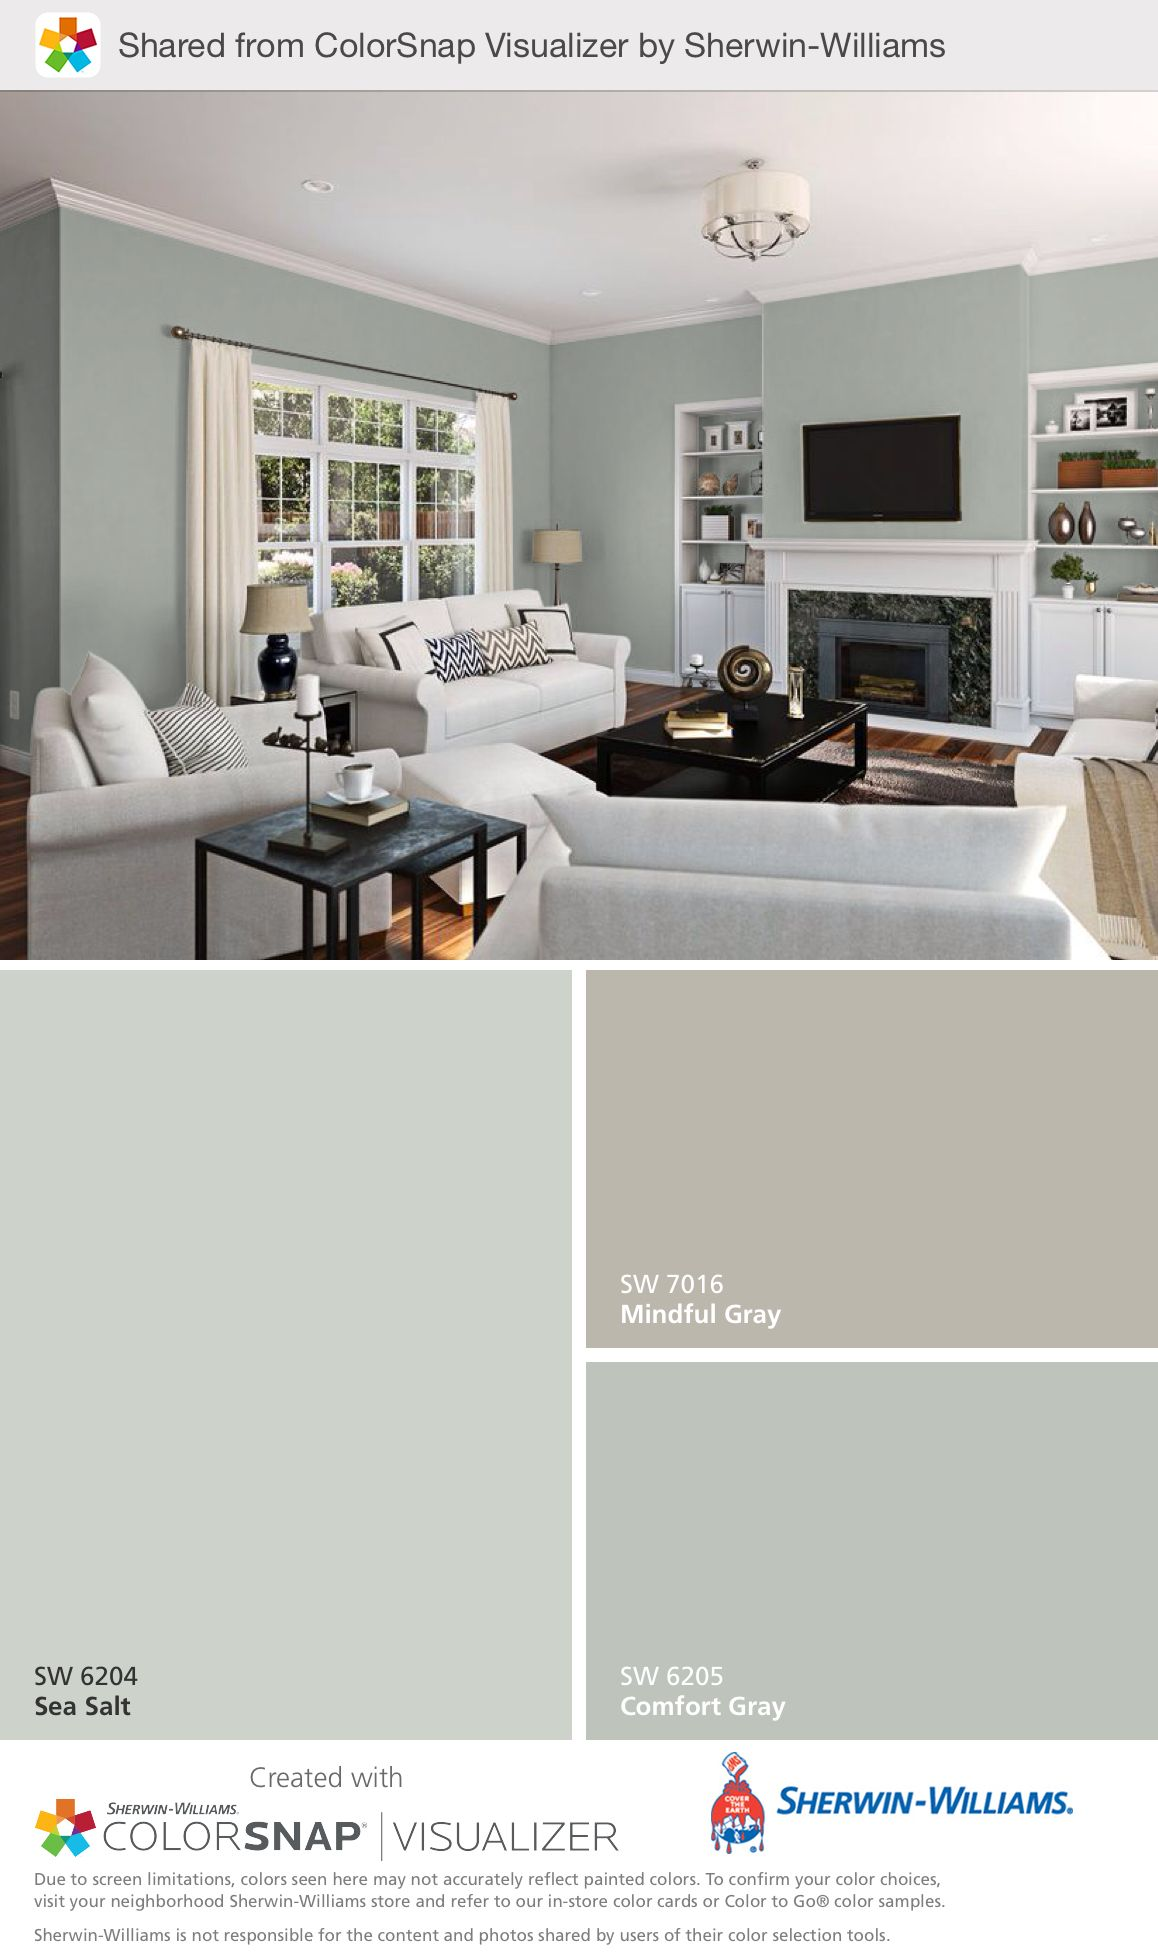 Sherwin Williams Comfort Gray (daylight) This color is